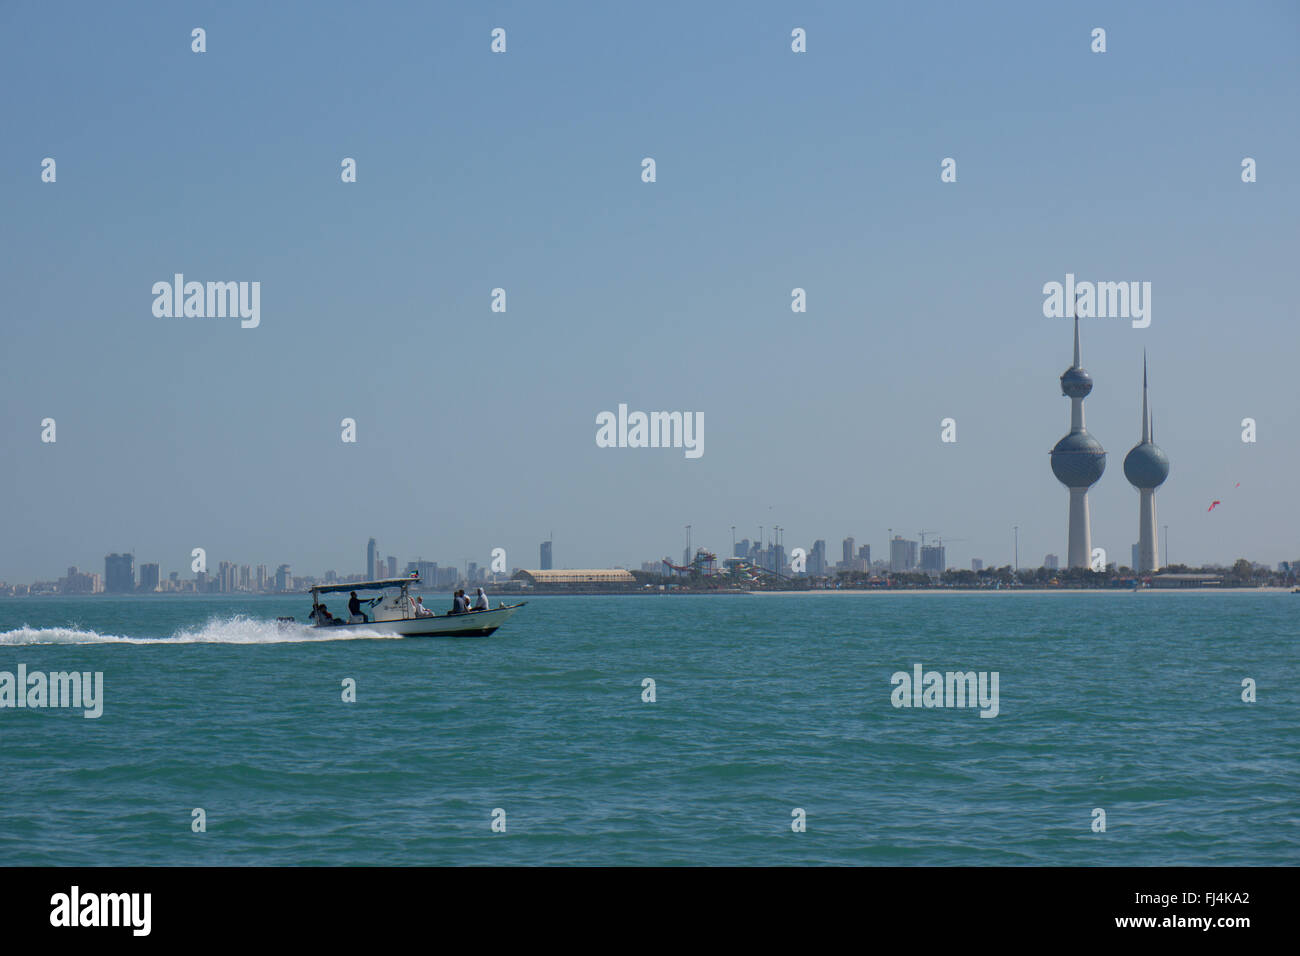 A speed boat passes the Kuwait towers - Stock Image